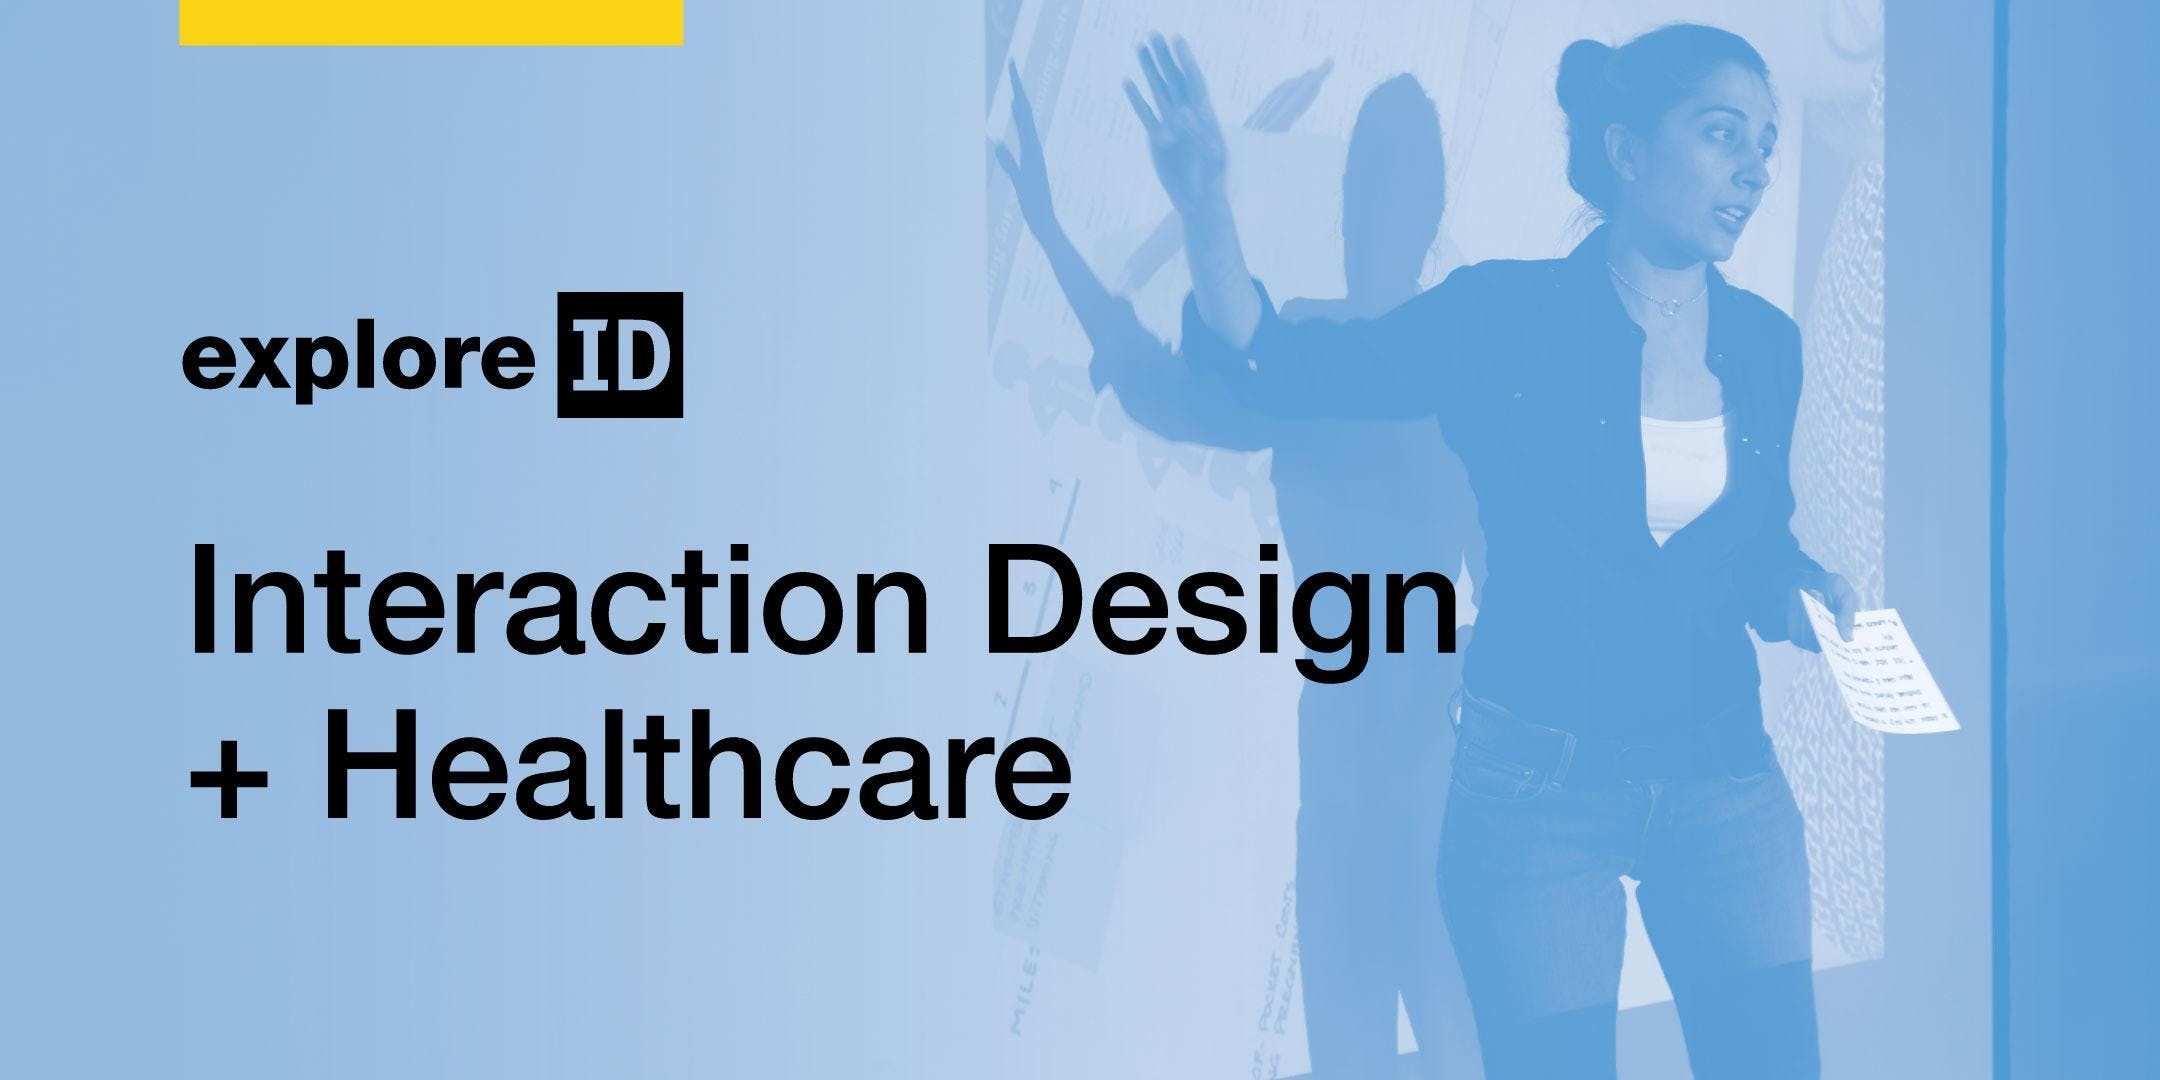 exploreID: Interaction Design + Healthcare